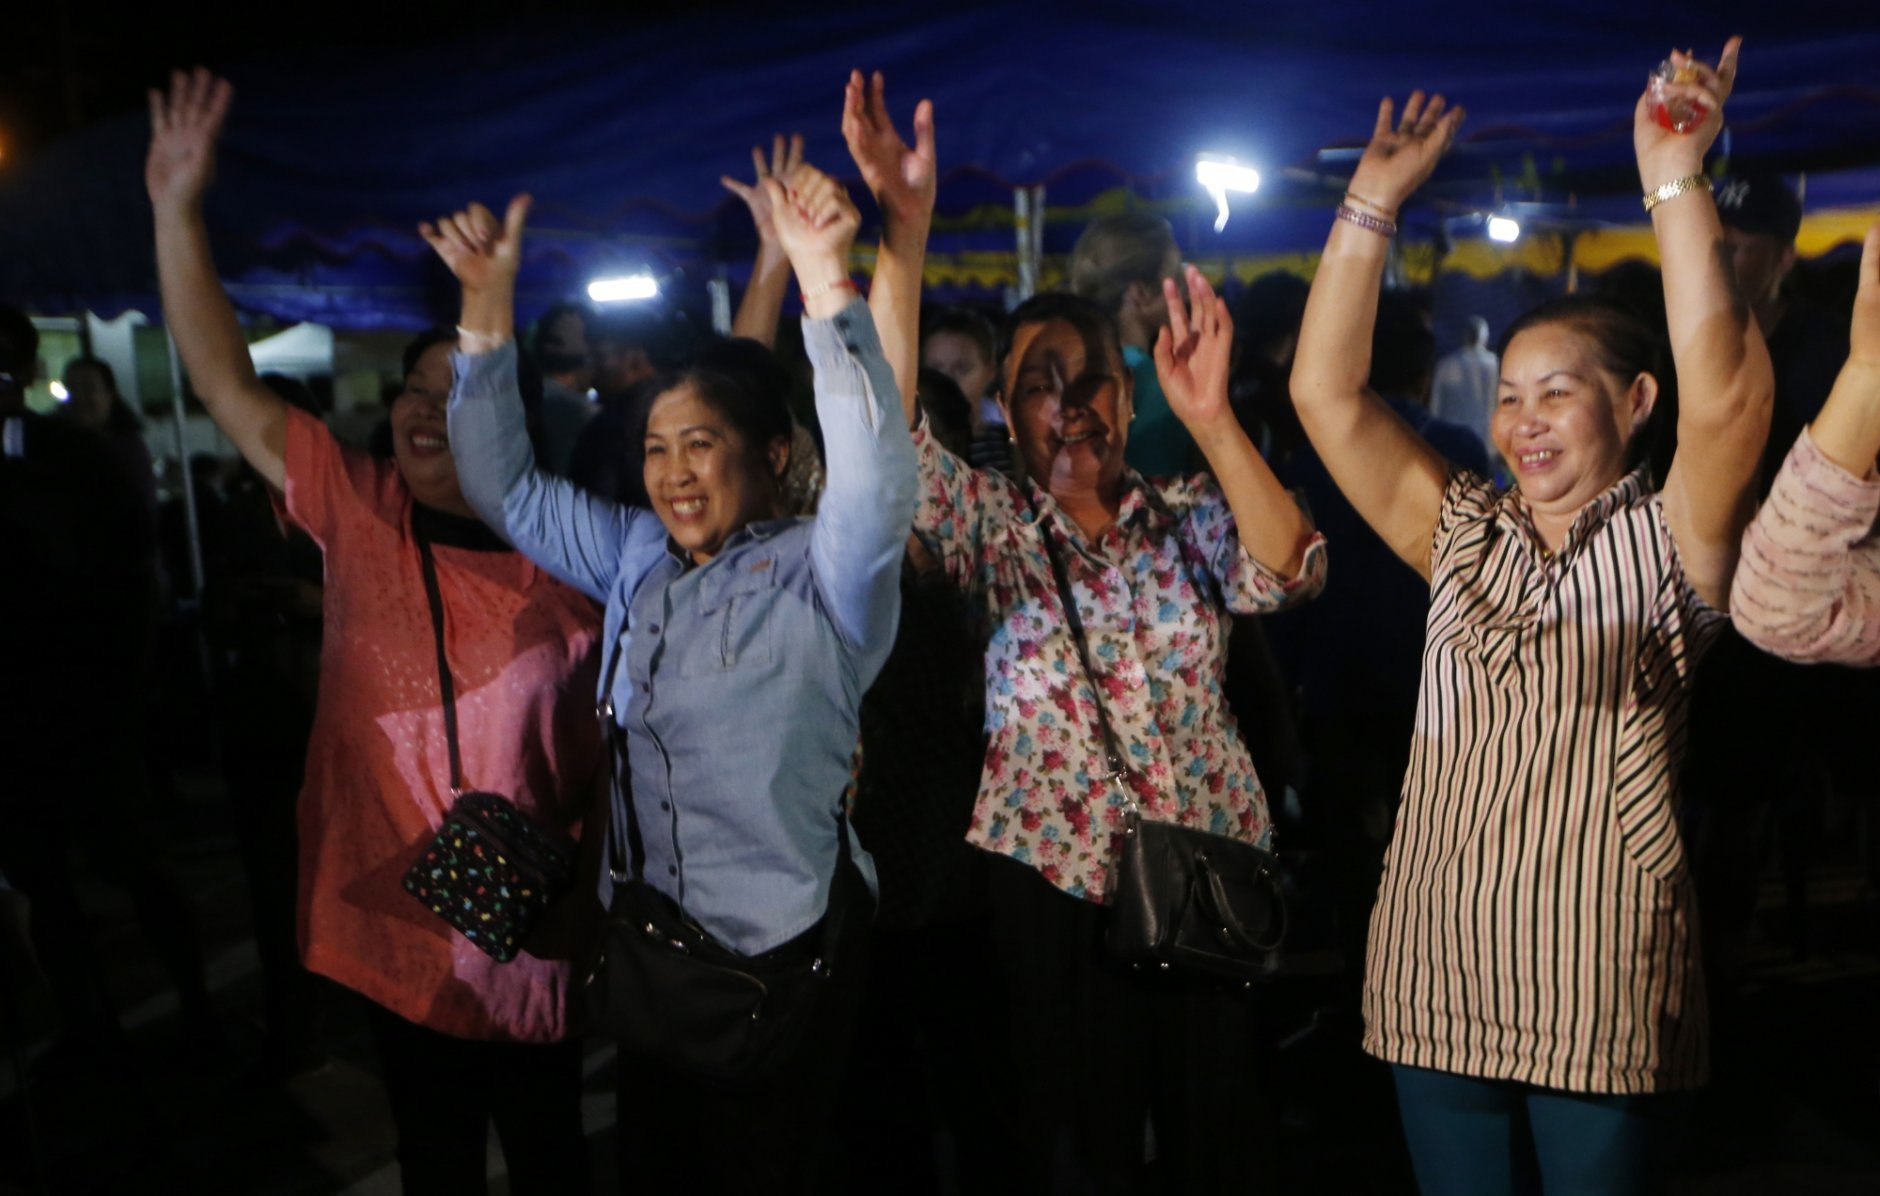 Peoples celebrate after evacuation in Chiang Rai as divers evacuated some of the 12 boys and their coach trapped at Tham Luang cave in the Mae Sai district of Chiang Rai province, northern Thailand, Tuesday, July 10, 2018. Thai Navy SEALs say all 12 boys and their coach were rescued from the cave, ending an ordeal that lasted more than 2 weeks. (AP Photo/Sakchai Lalit)